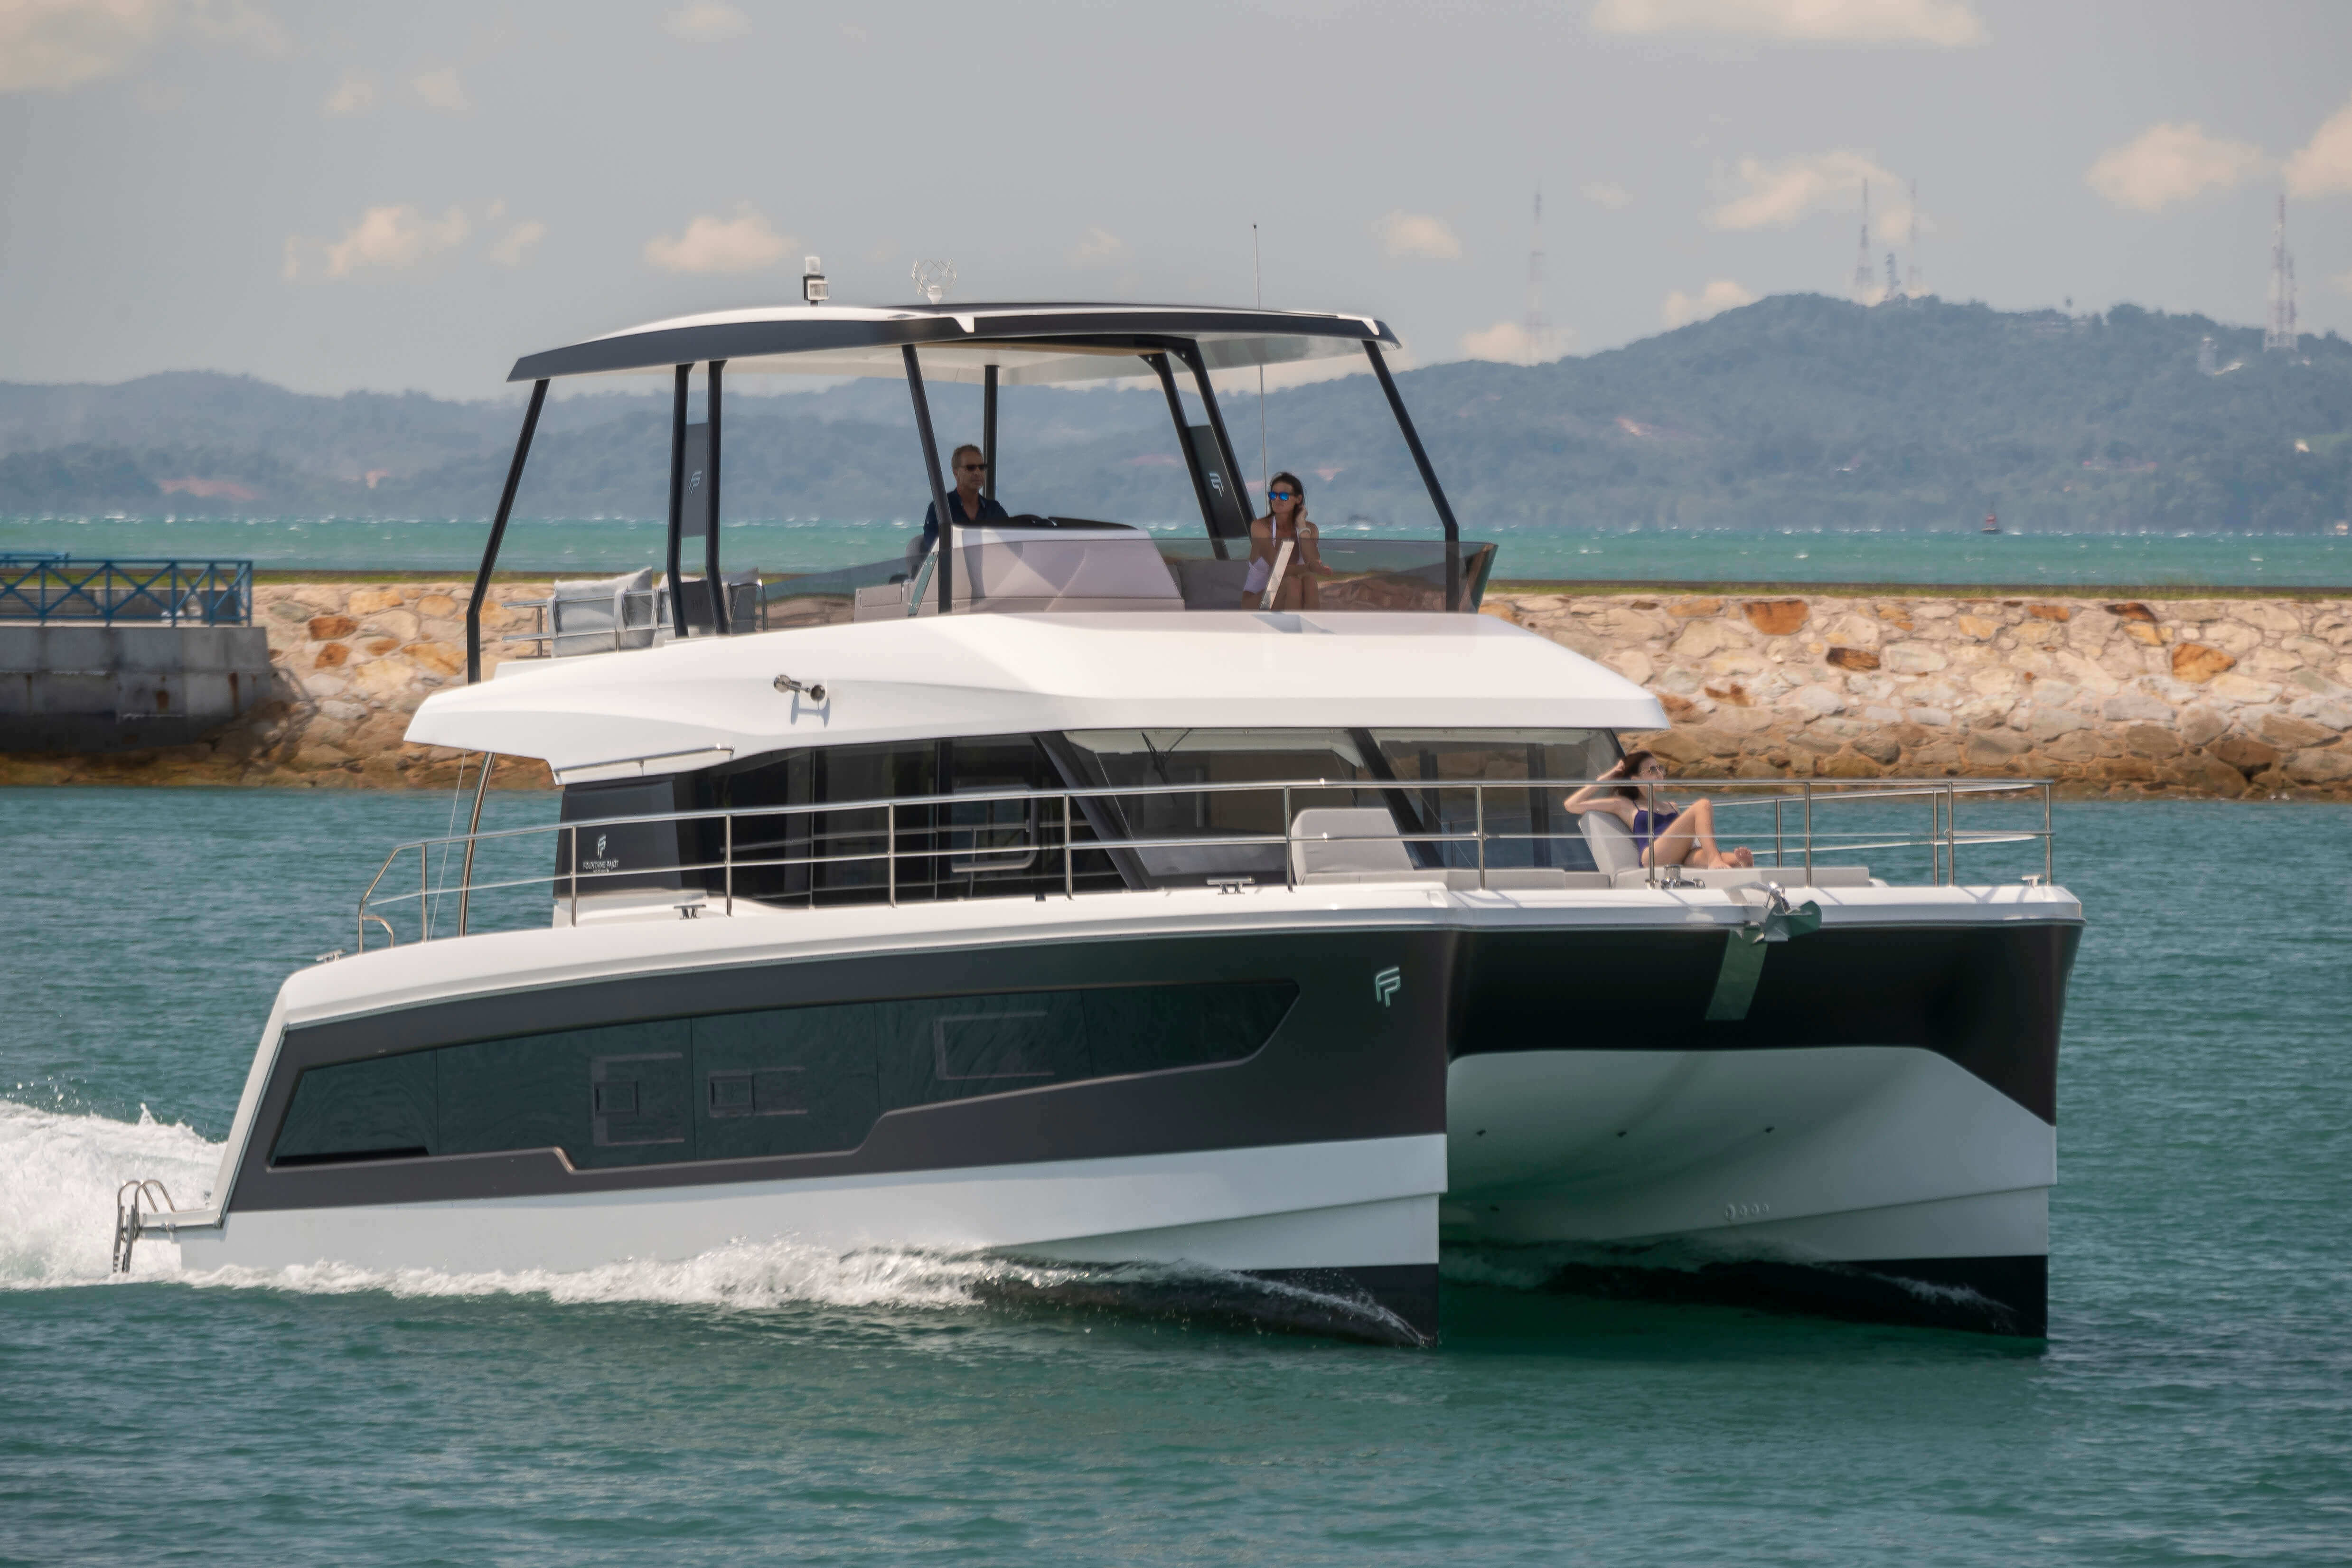 New Power Catamaran for Sale  MY 40 Boat Highlights